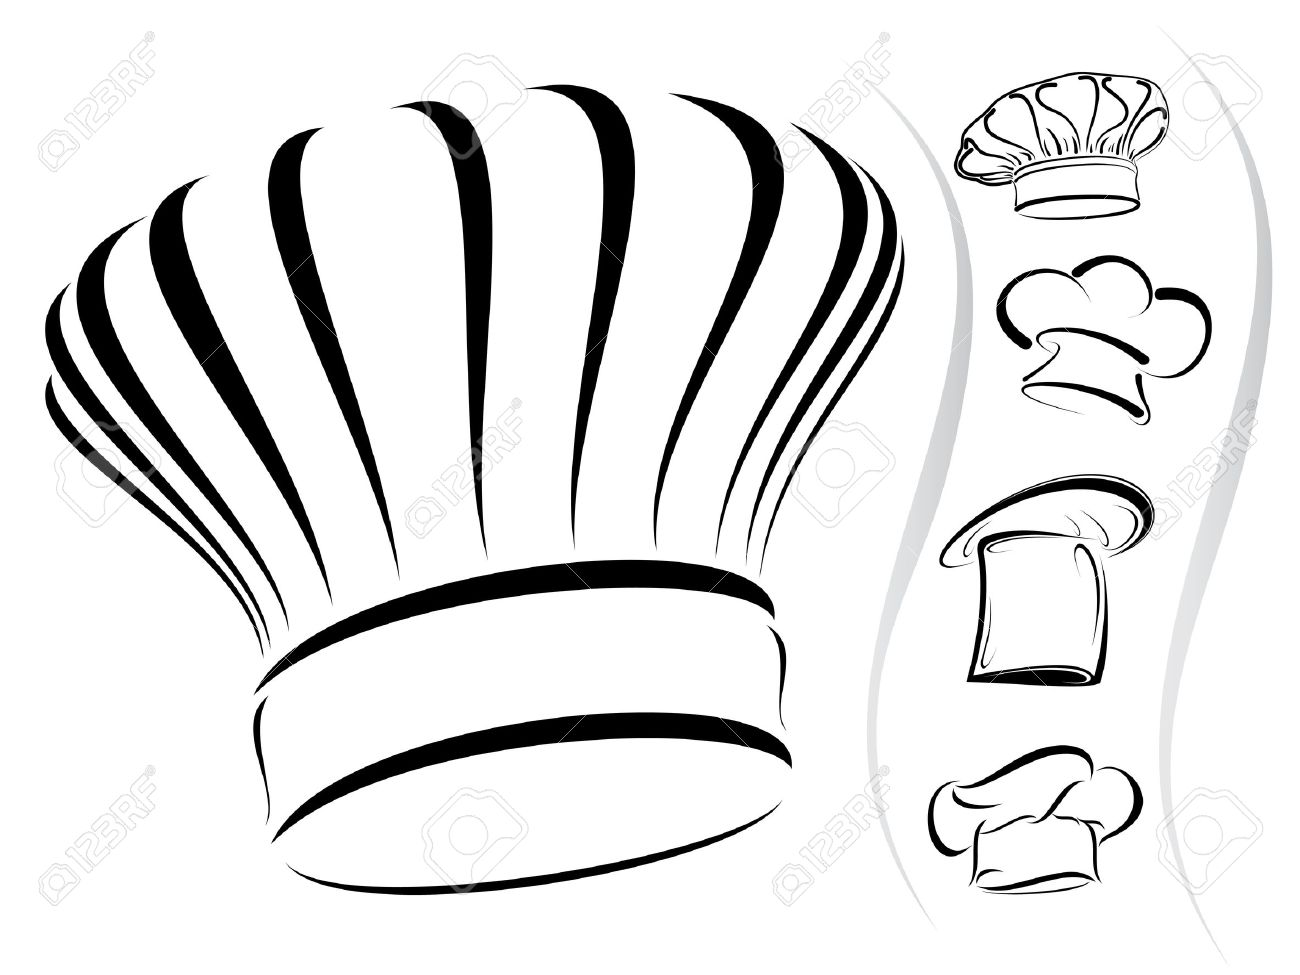 Five chef hat silhouettes.